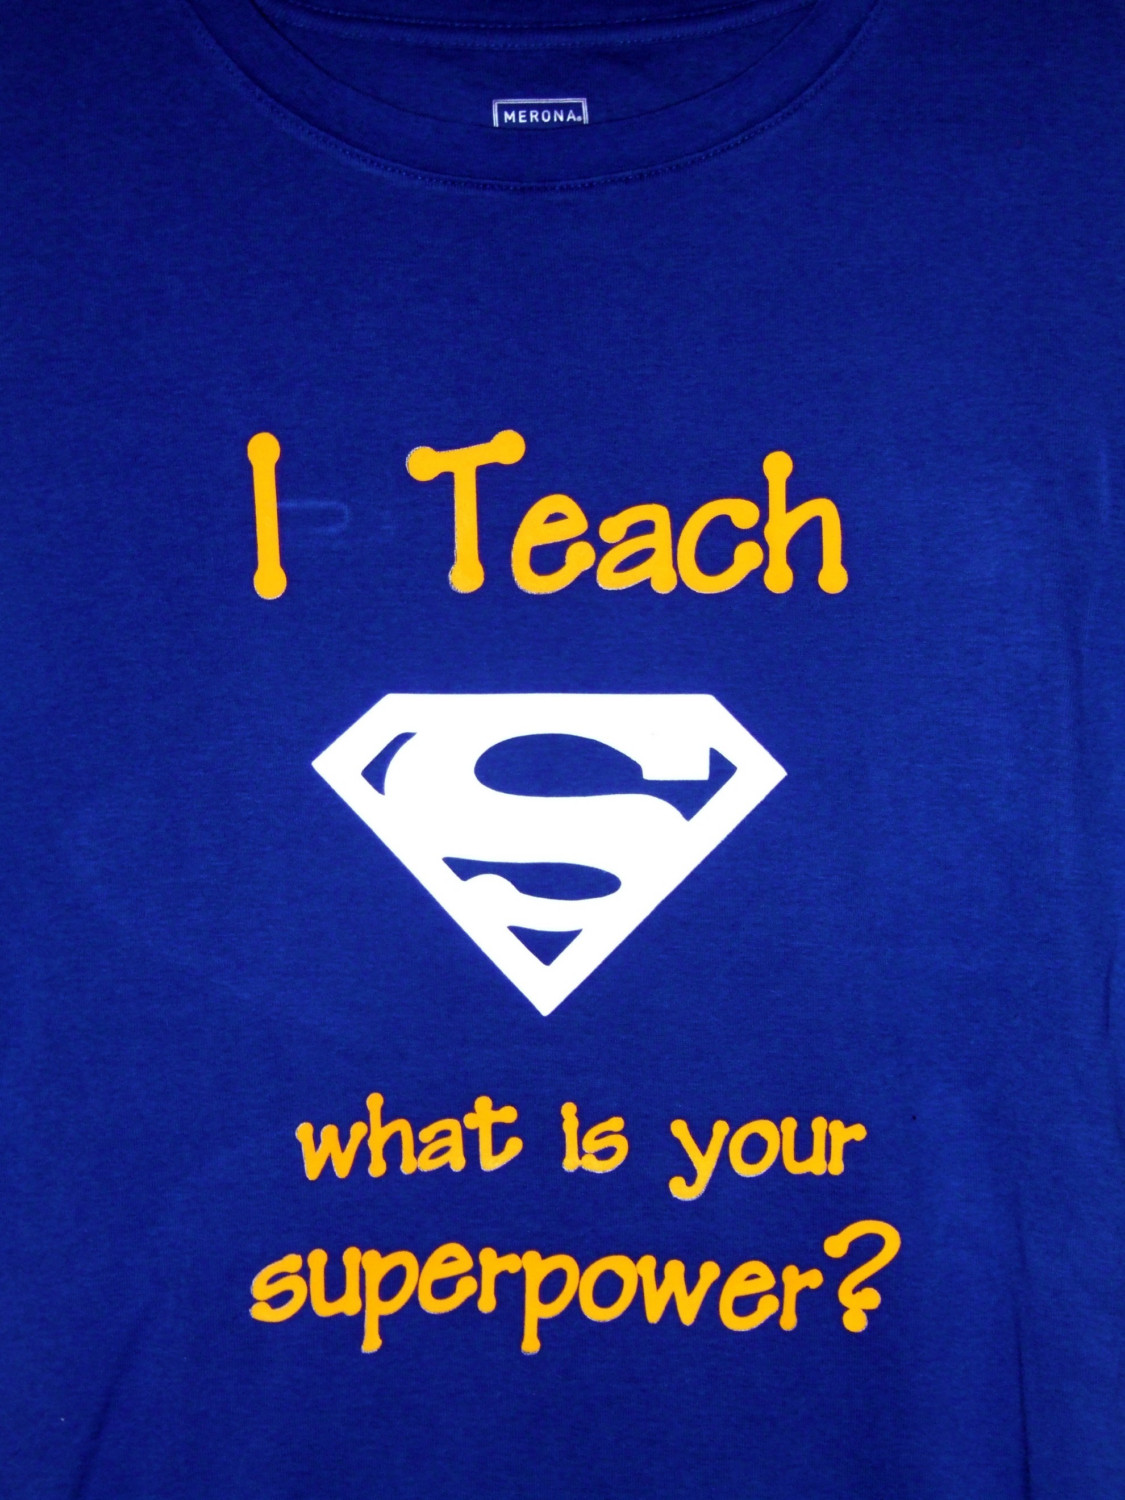 The Myth of the Super Teacher